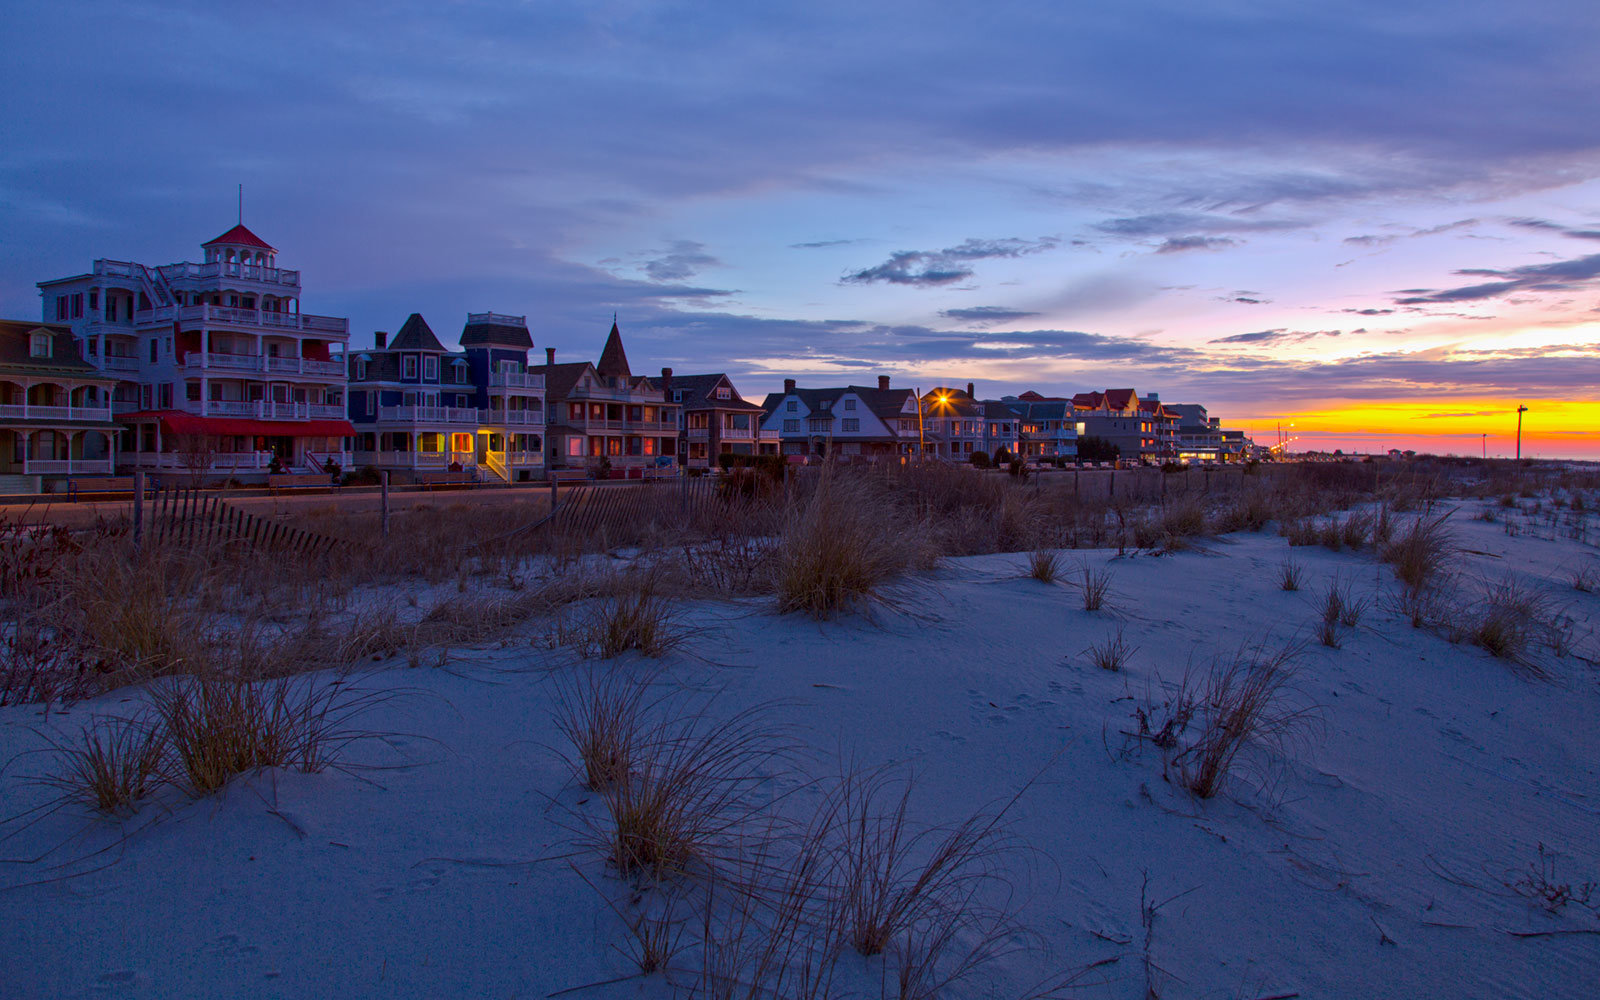 Cape May, New Jersey, Springtime